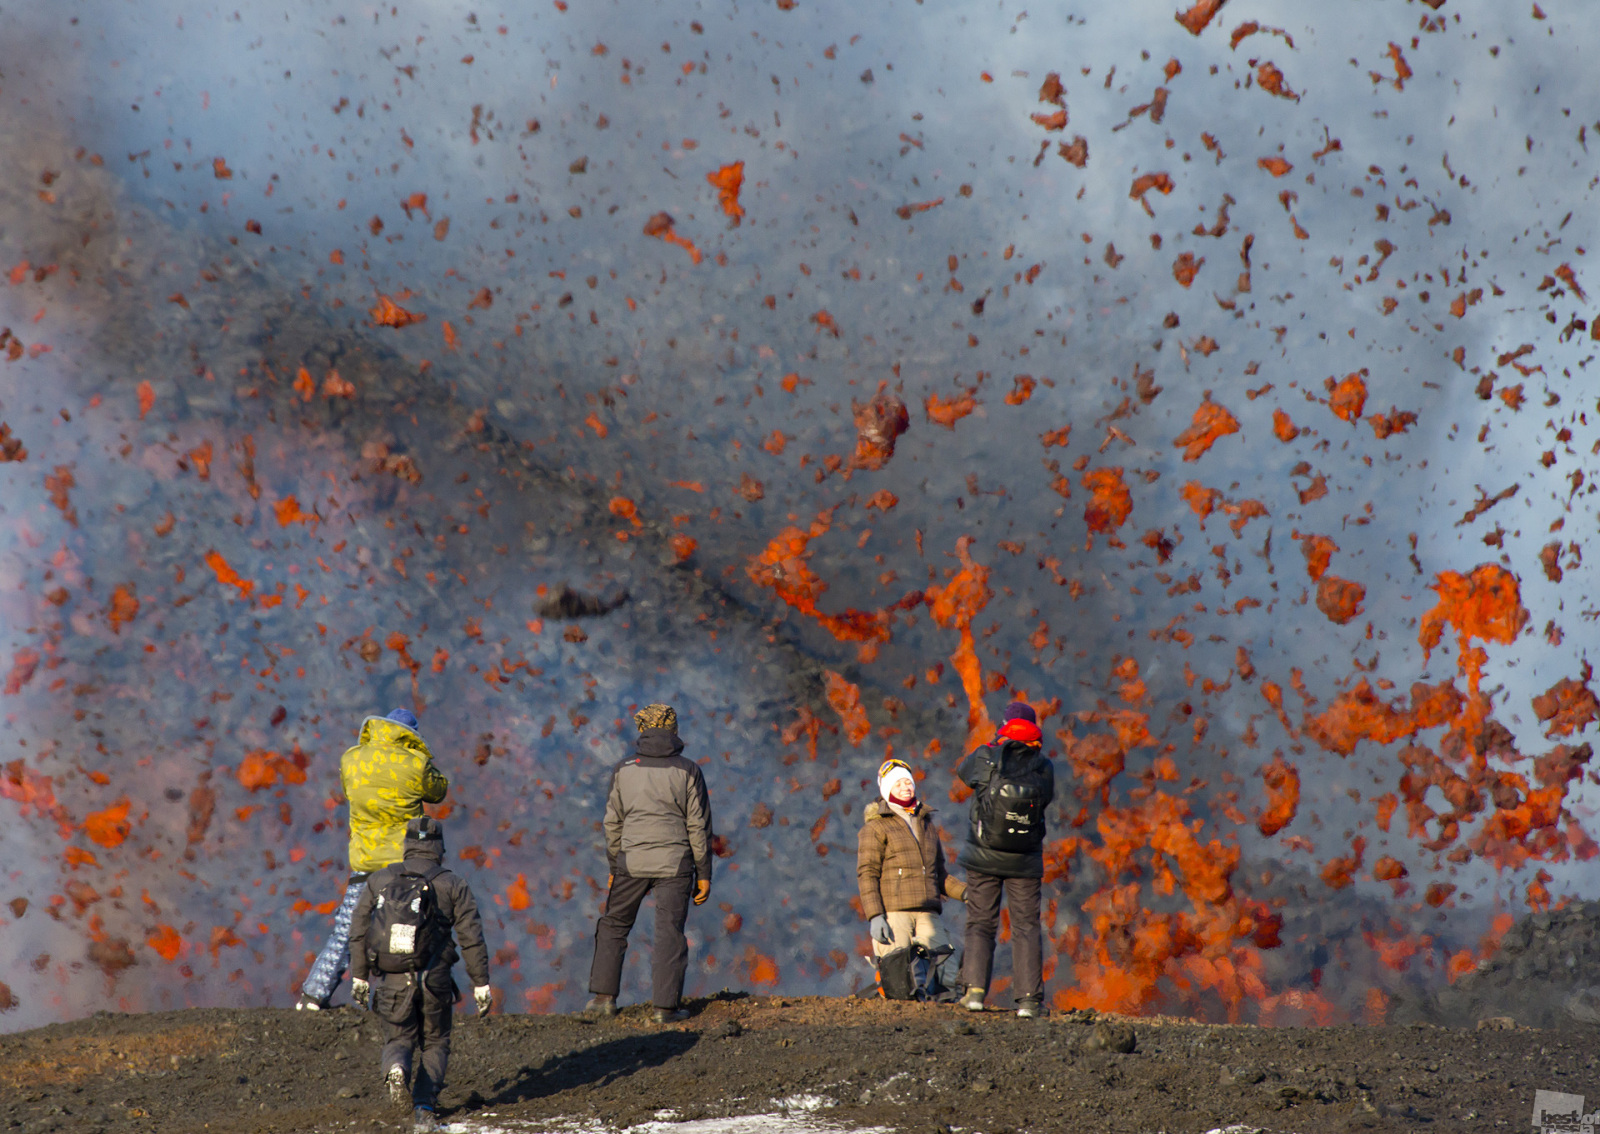 Tourists watch lava fountains from a distance of just 300 meters after an eruption of the volcano Plosky Tolbachik, Kamchatka